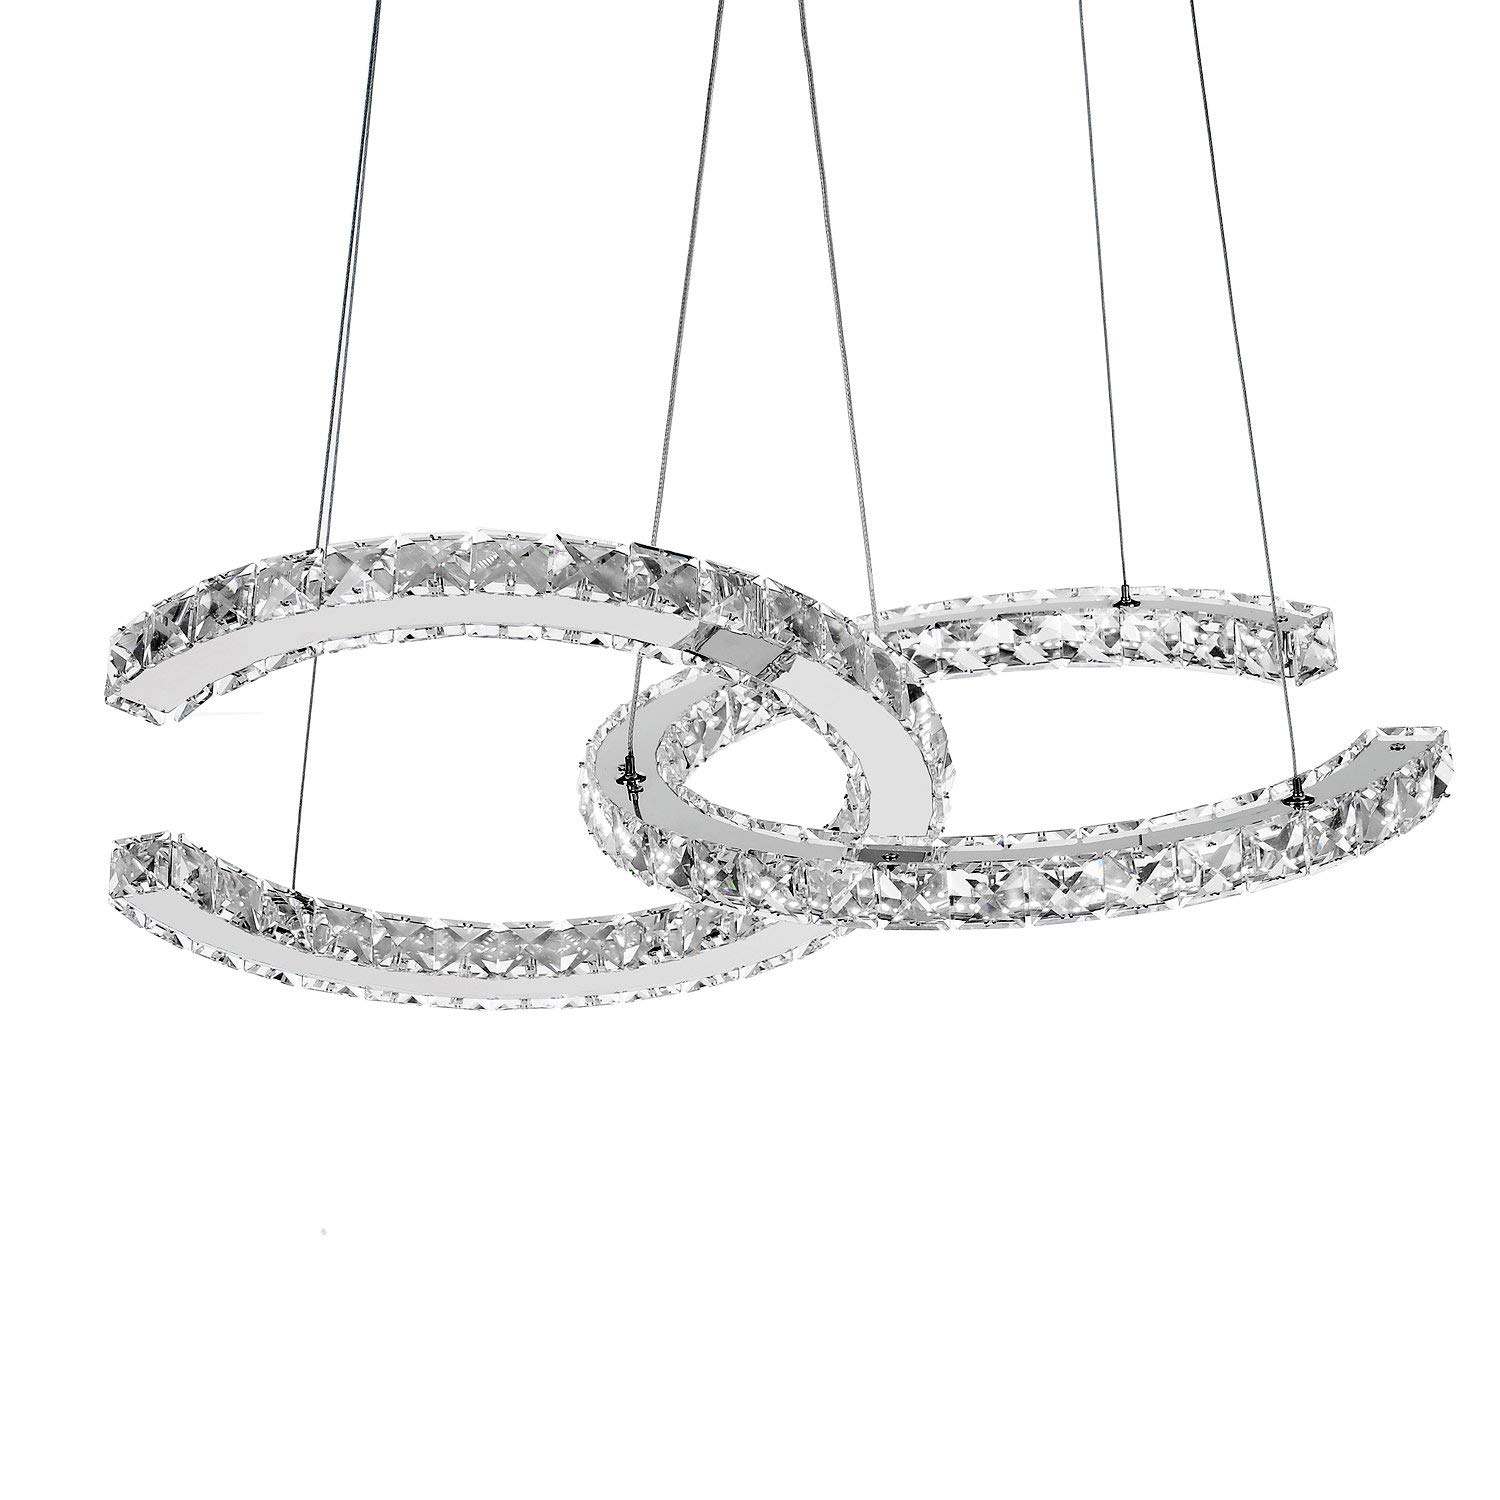 Dearlan Chandeliers Aluminum Chain Chandelier Lighting Light Fixture Modern Crystal 2 C Rings Dia 1574 Ceiling Living Room Hotel Hallway Foyer Entry Bed